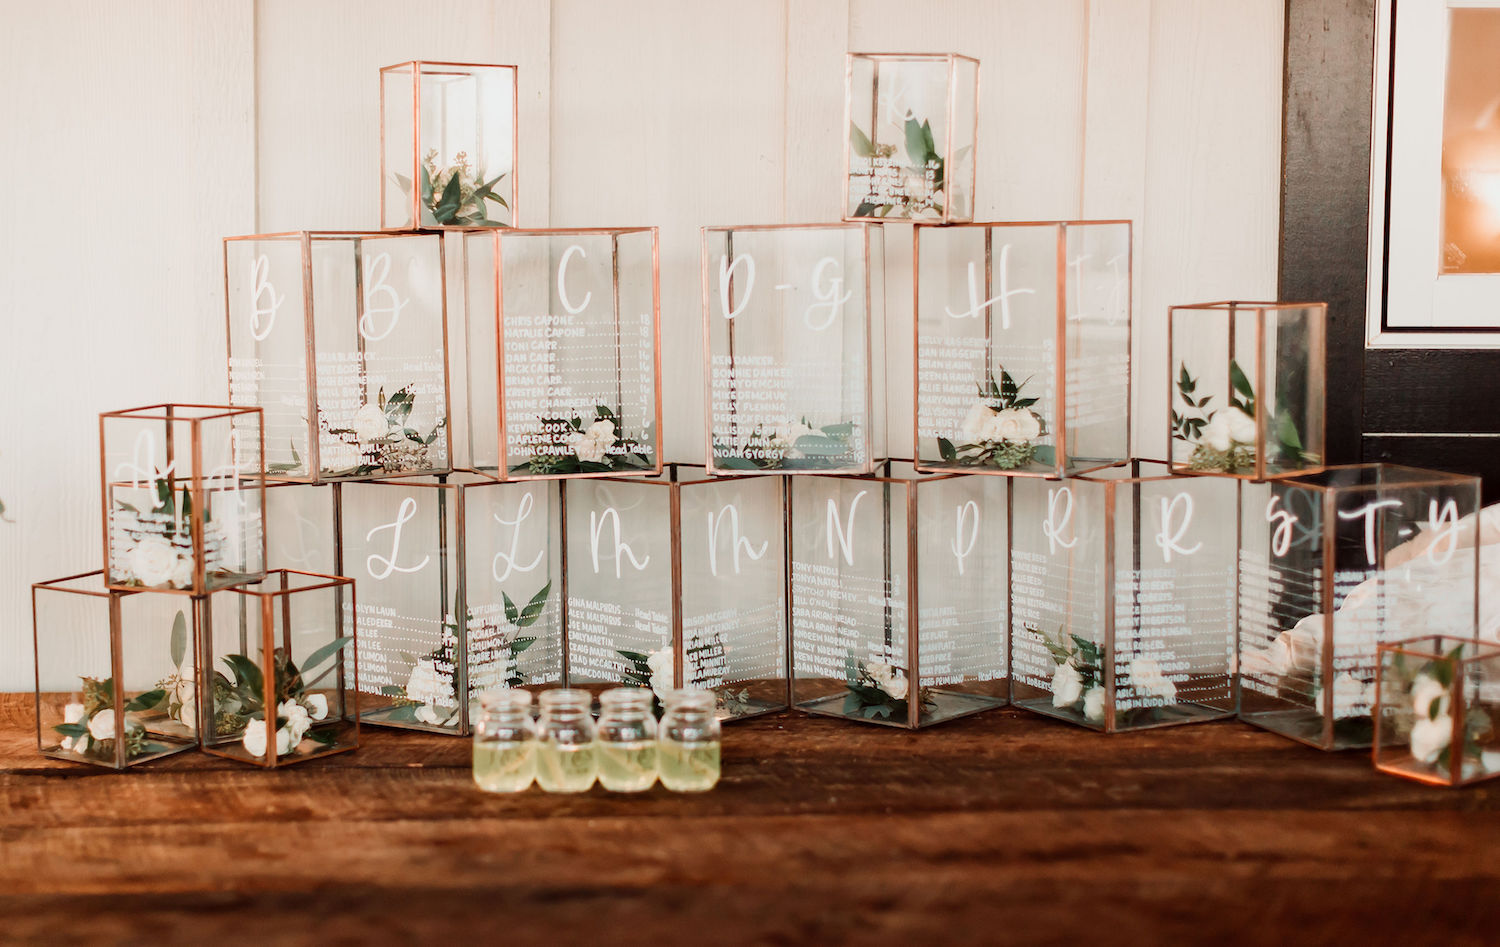 Jami, the bride, used these copper and glass lanterns with the names of their guests and table assignment etched into the glass. We added Ivory Spray Rose and a mix of greens and voila - flowers everywhere. Photography by Hay Alexandra. Table at Shadow Creek in Purcelleville, Virginia.